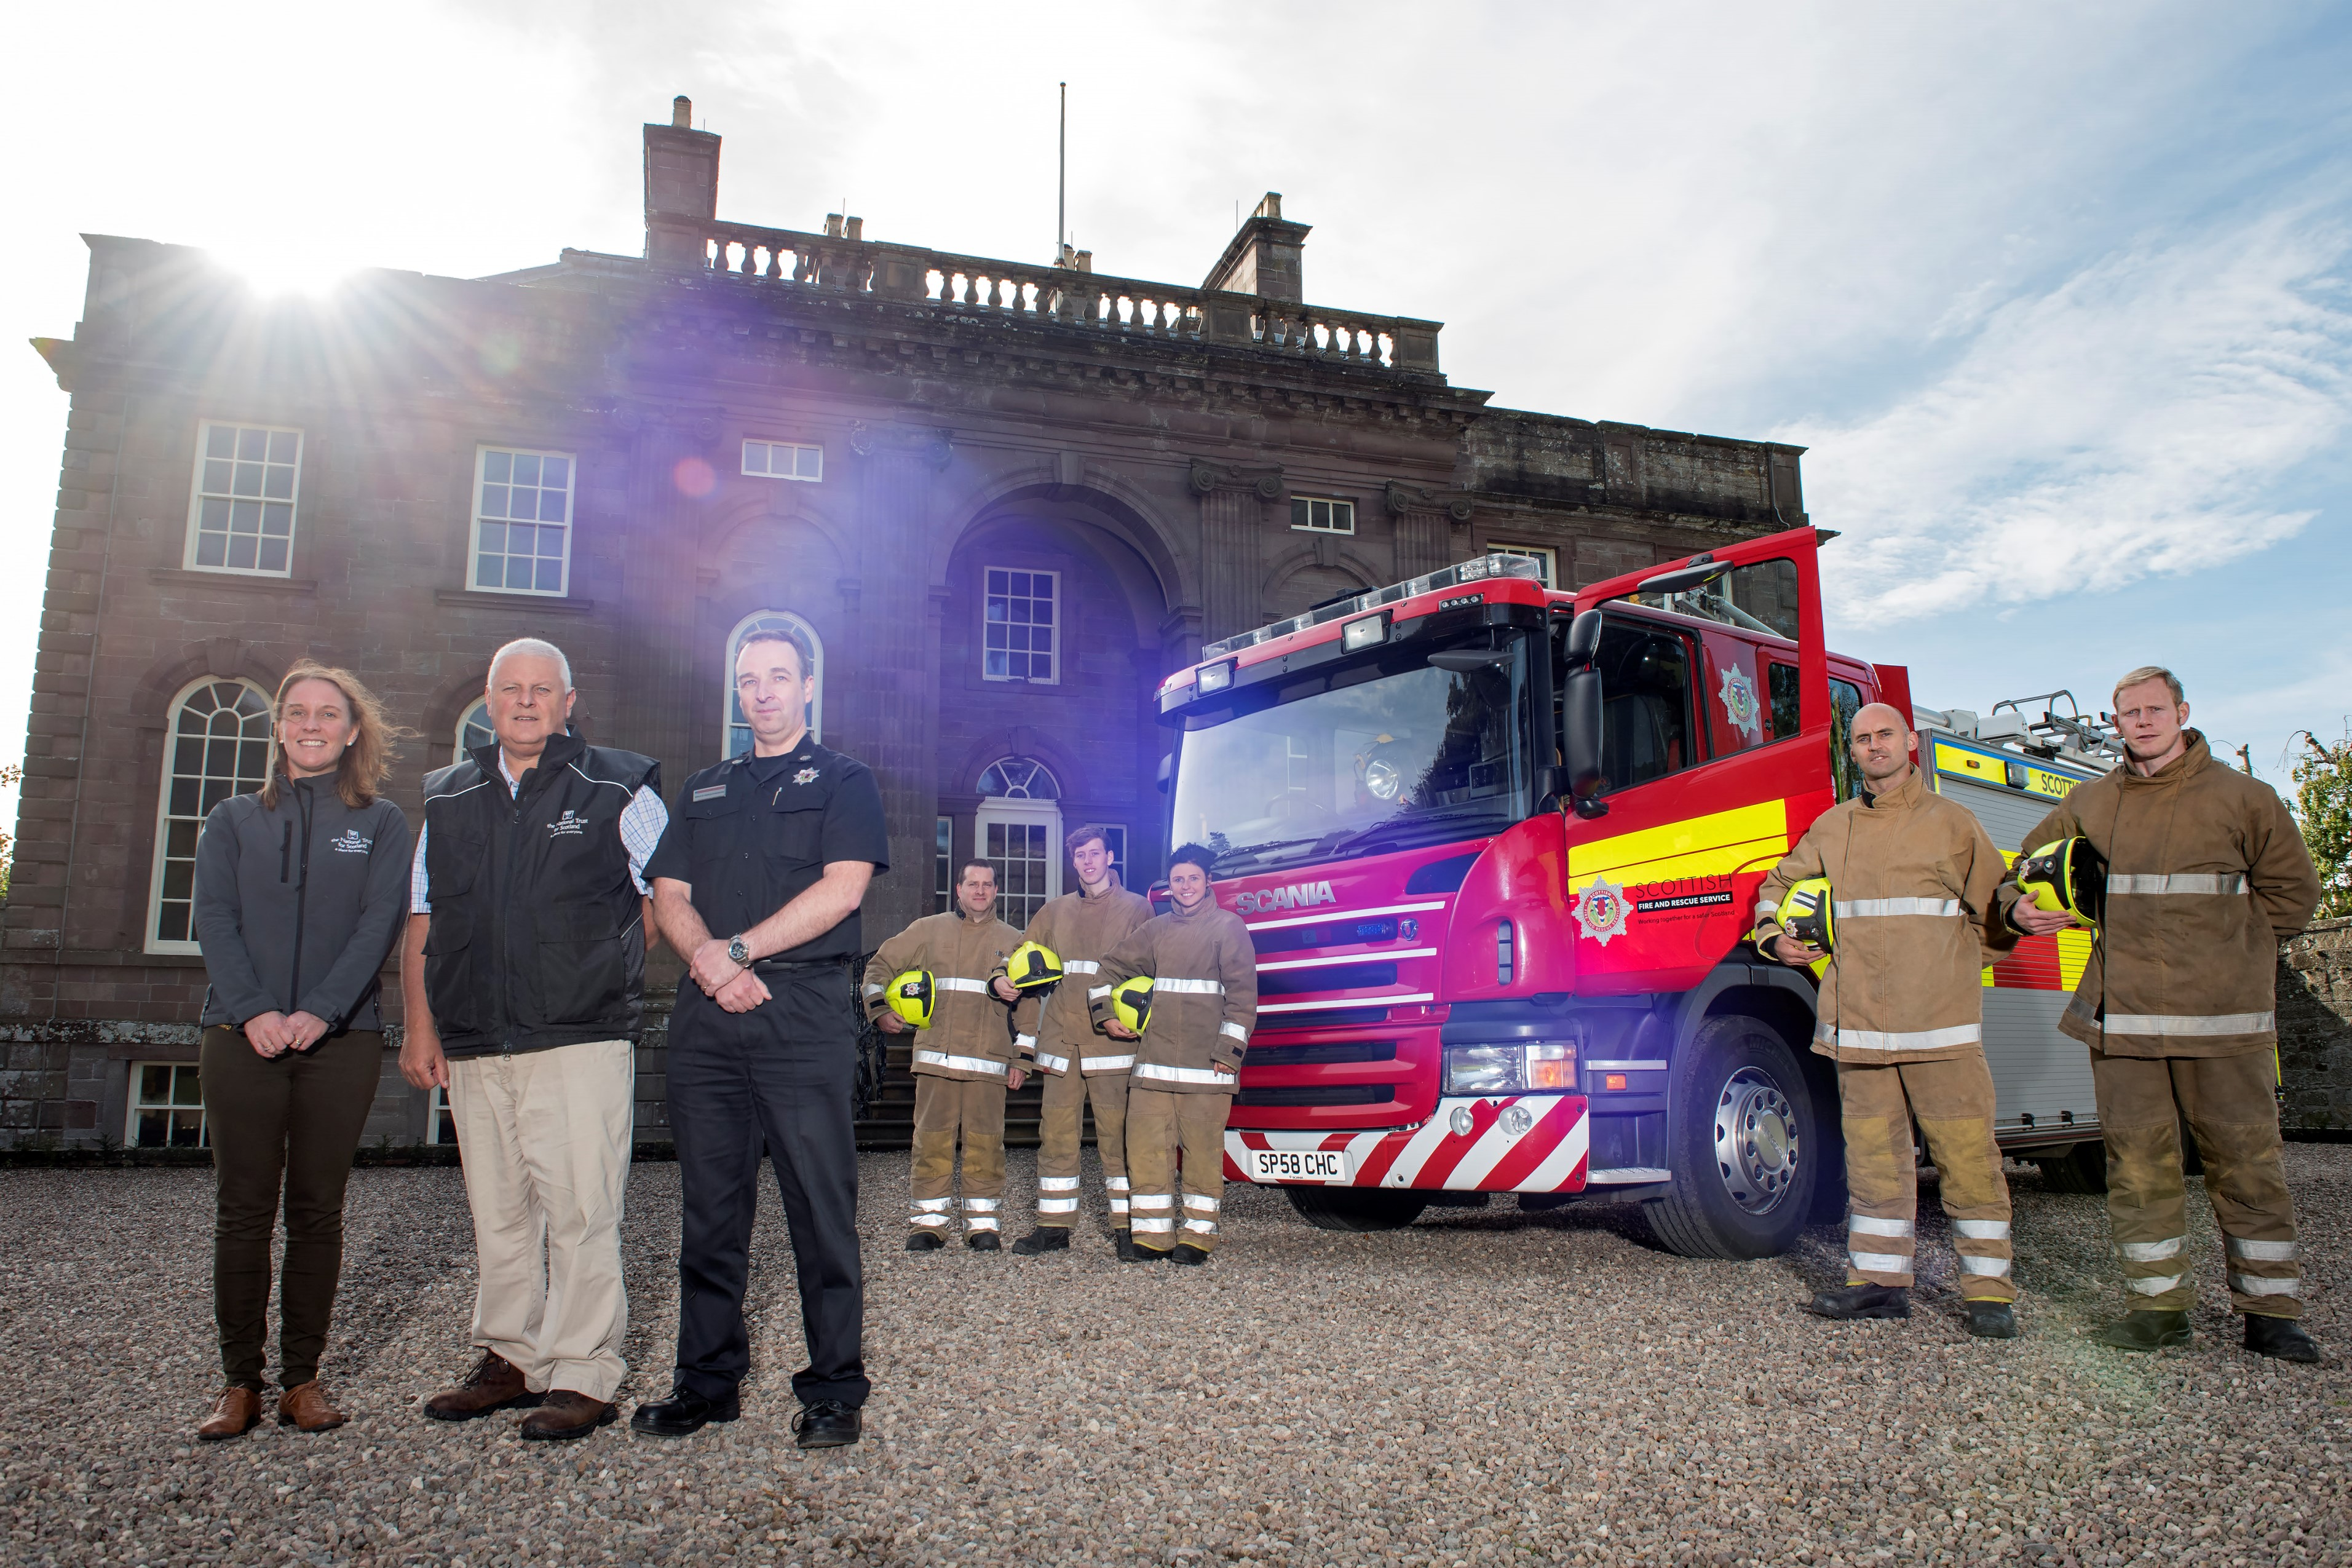 SFRS and National Trust partnership to protect Scotland's history